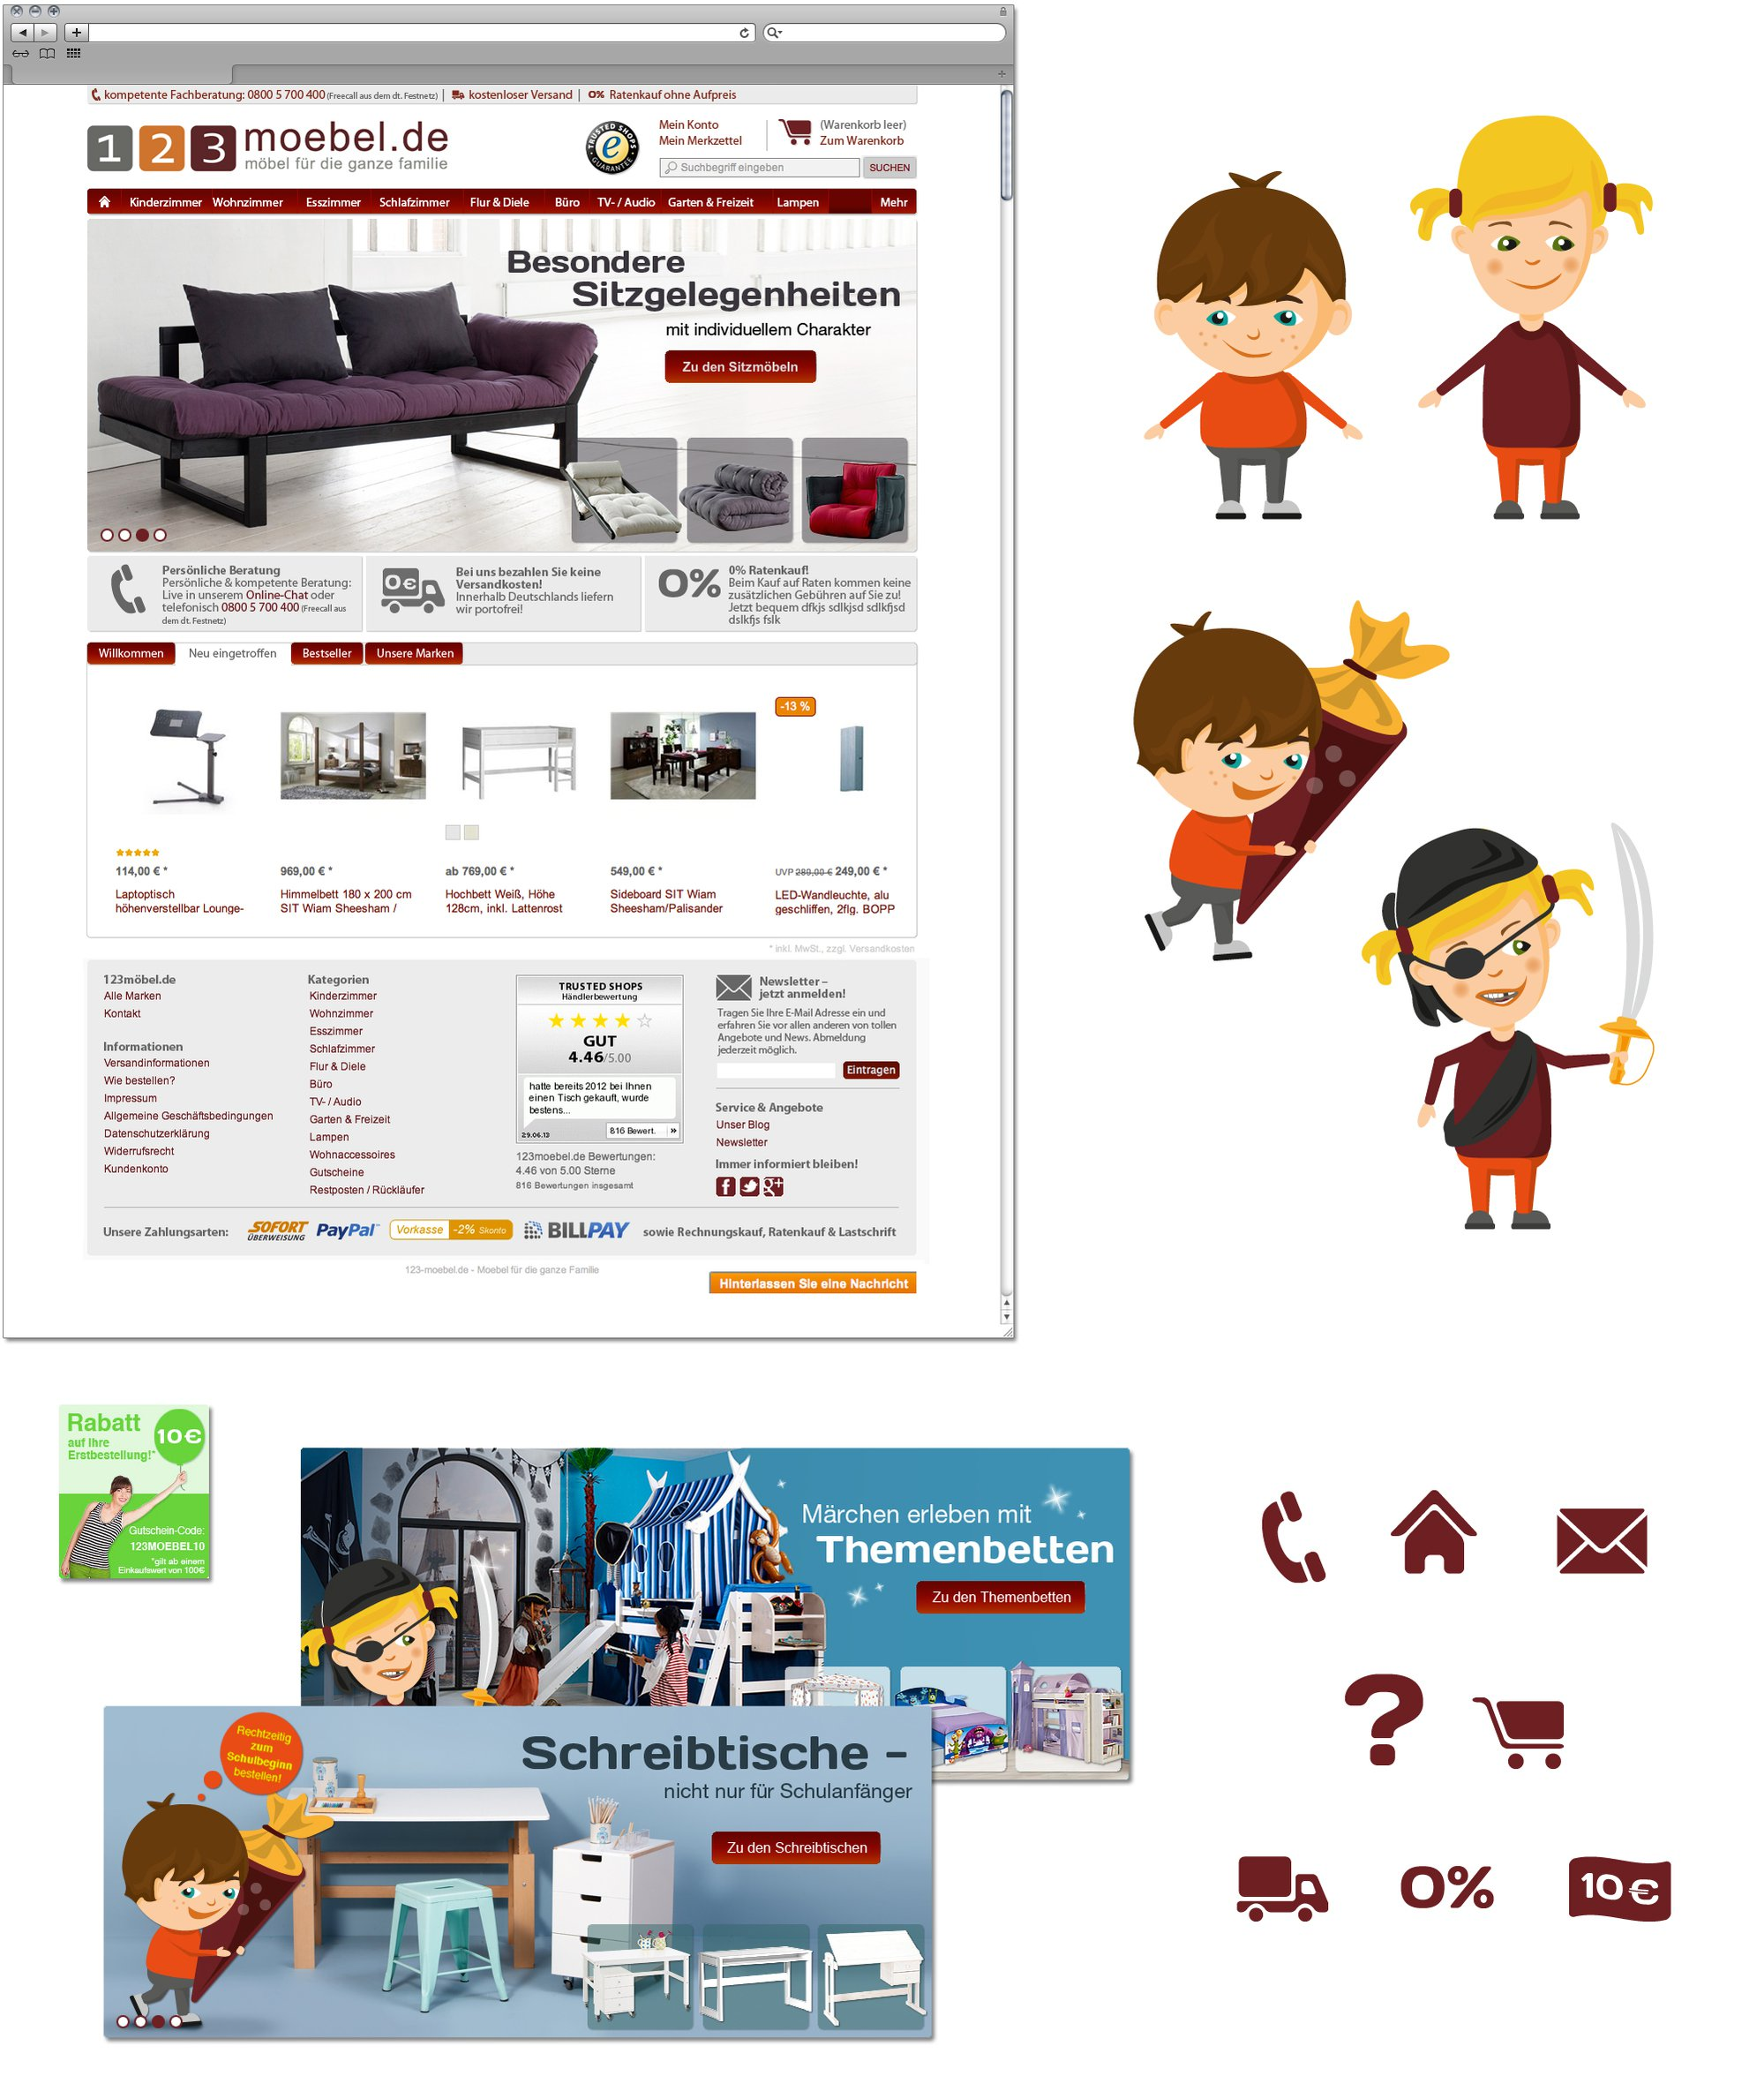 123moebel | Webdesign und Illustration